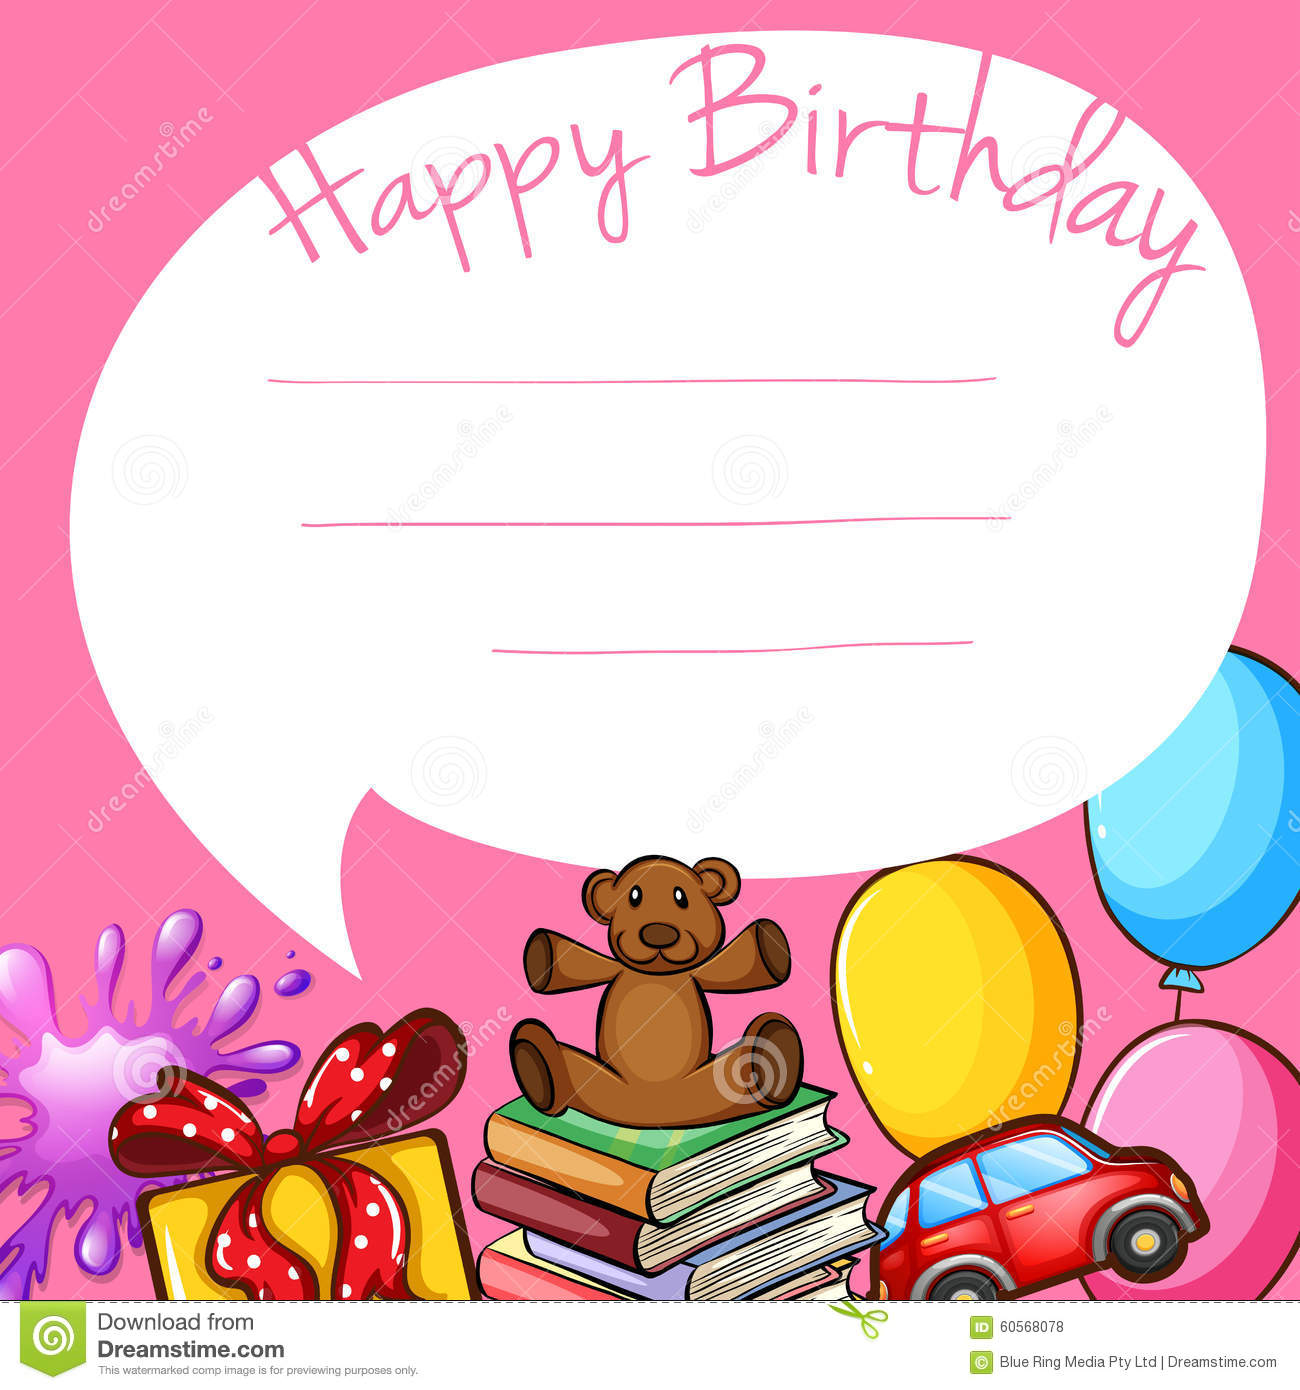 Free birthday cards images free stock photos download